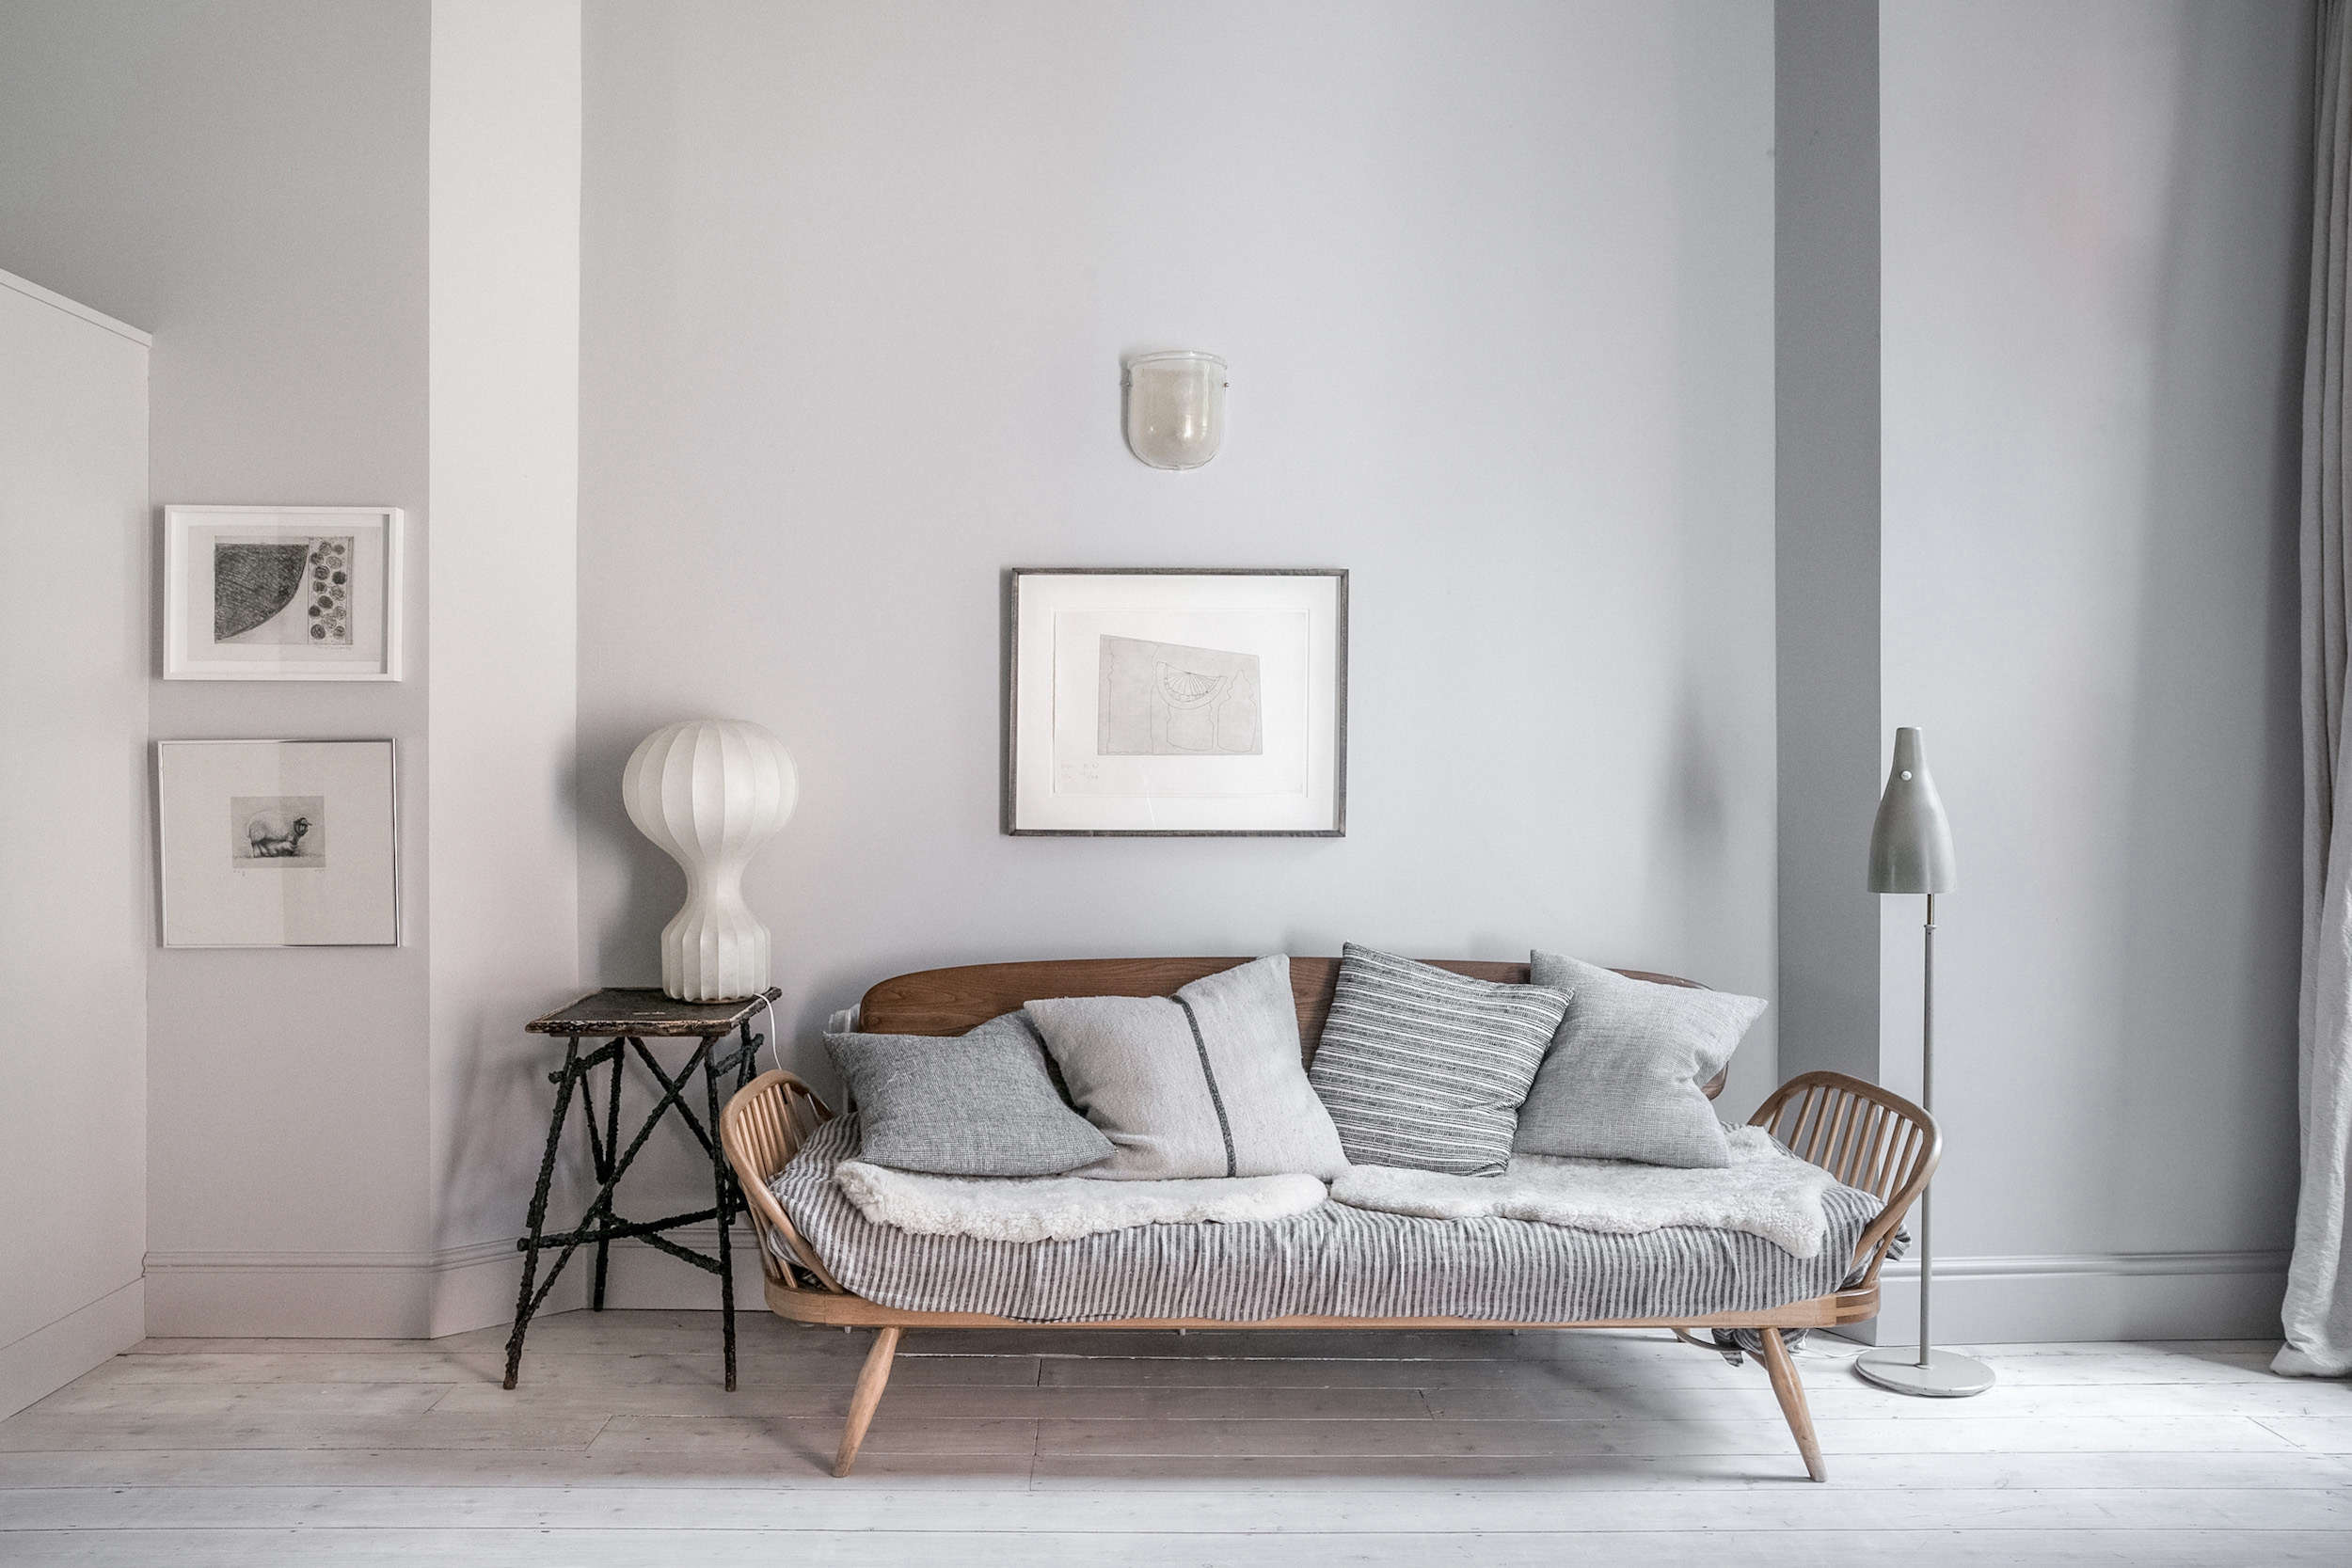 Design Luminary Faye Toogood's Family-Friendly Minimalist Apartment - Remodelista